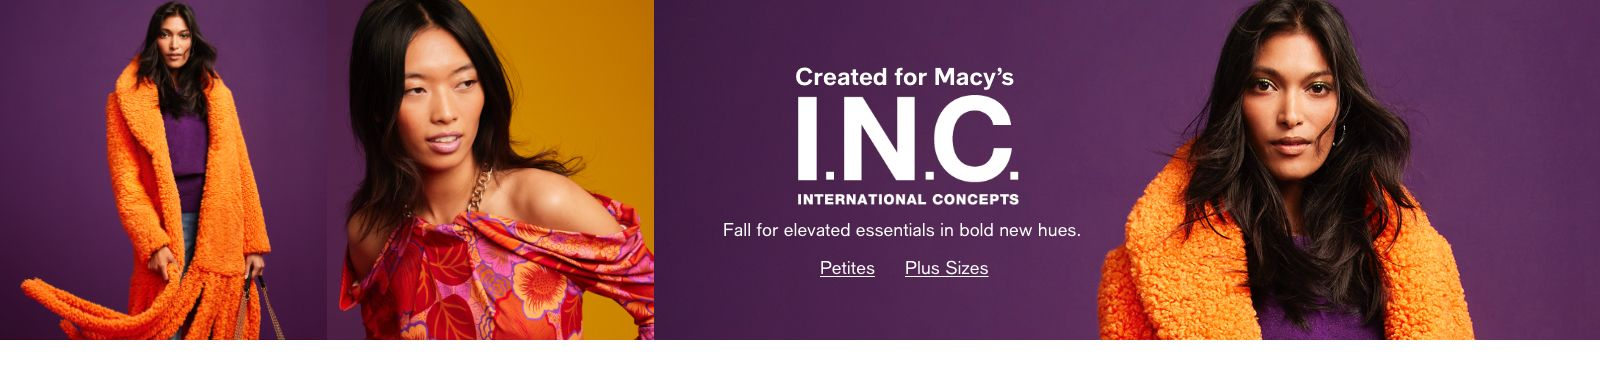 Created for Macy's, INC, International Concepts, Fall for elevated essentials in bold new hues, Petites, Plus Sizes